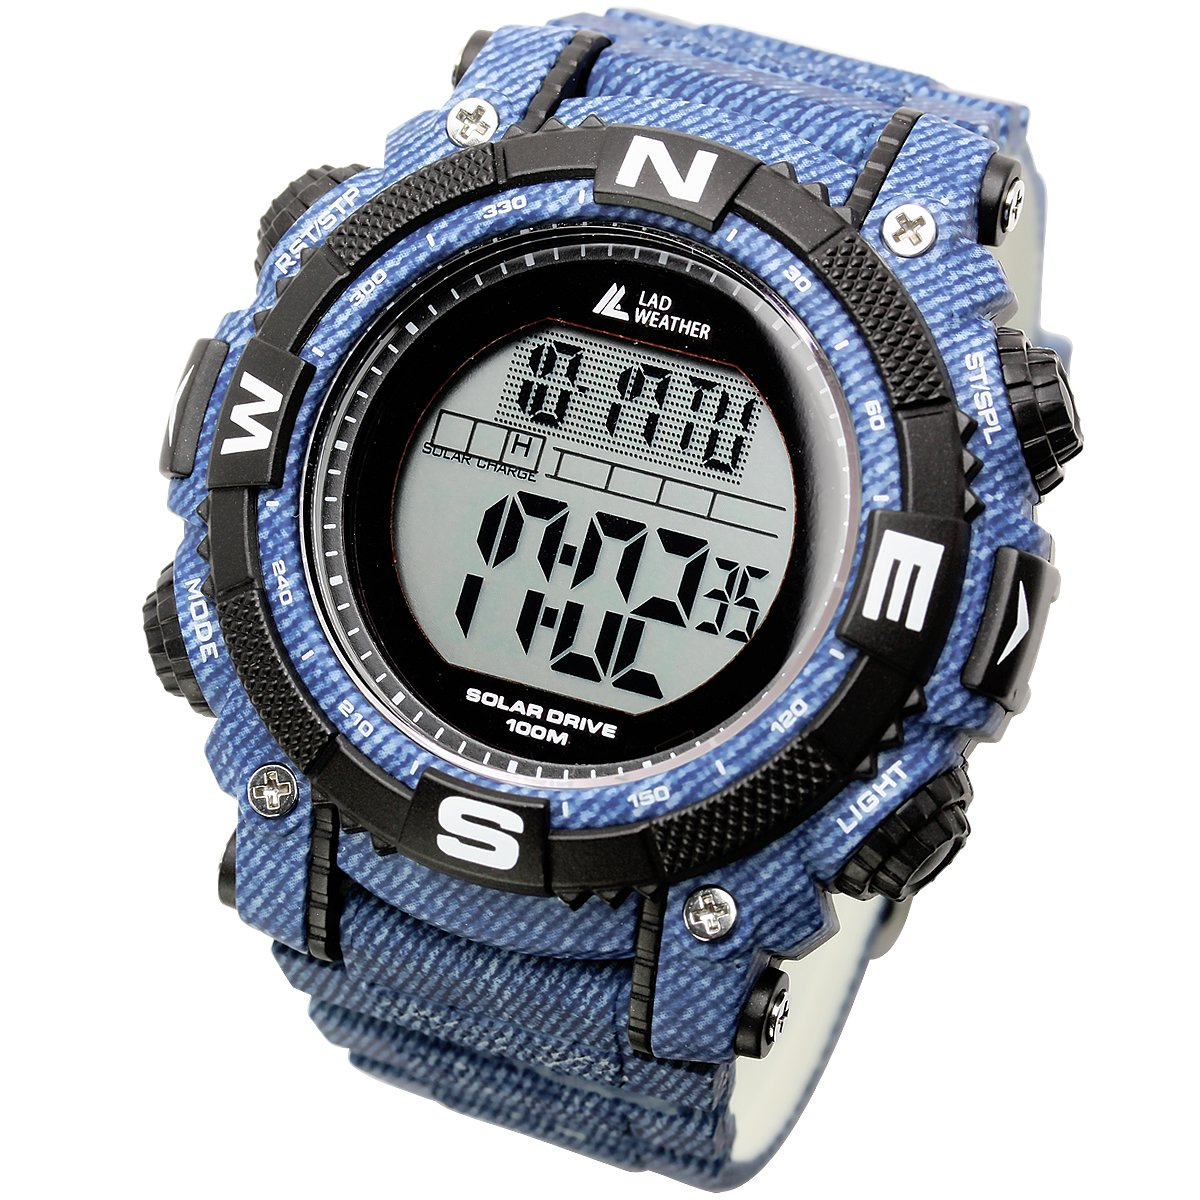 [LAD WEATHER] Powerful solar digital watch Sports Military Lap Split men's watch by LAD WEATHER